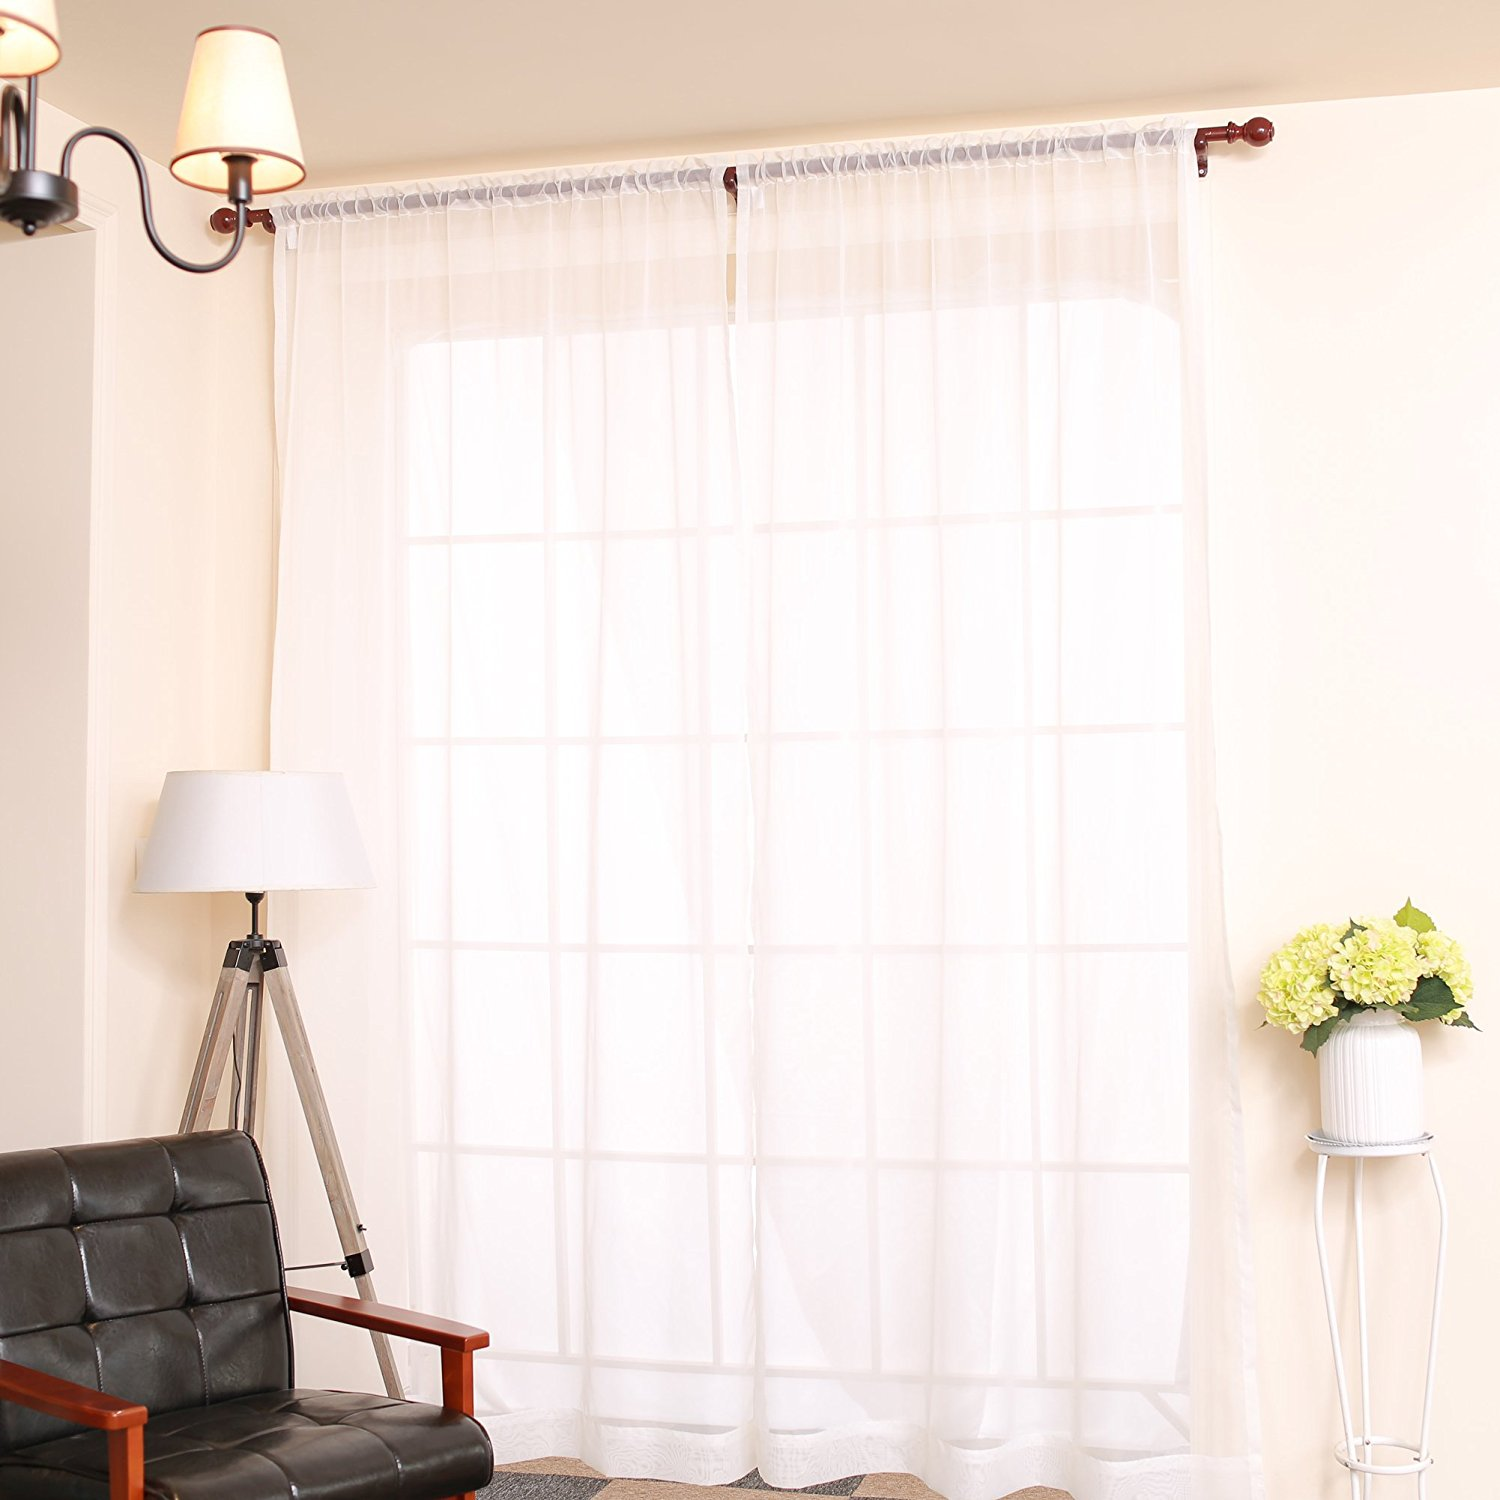 brown navy window blue size sliding of extra drapery outstanding curtains amazing large bro long panels valance gorgeous out white wide panel design valances canada bedroom dazzle sheer door orange sheerrtains curtain patterns amazon sheers houses inch momentous terrifying and drapes striking drop surprising image